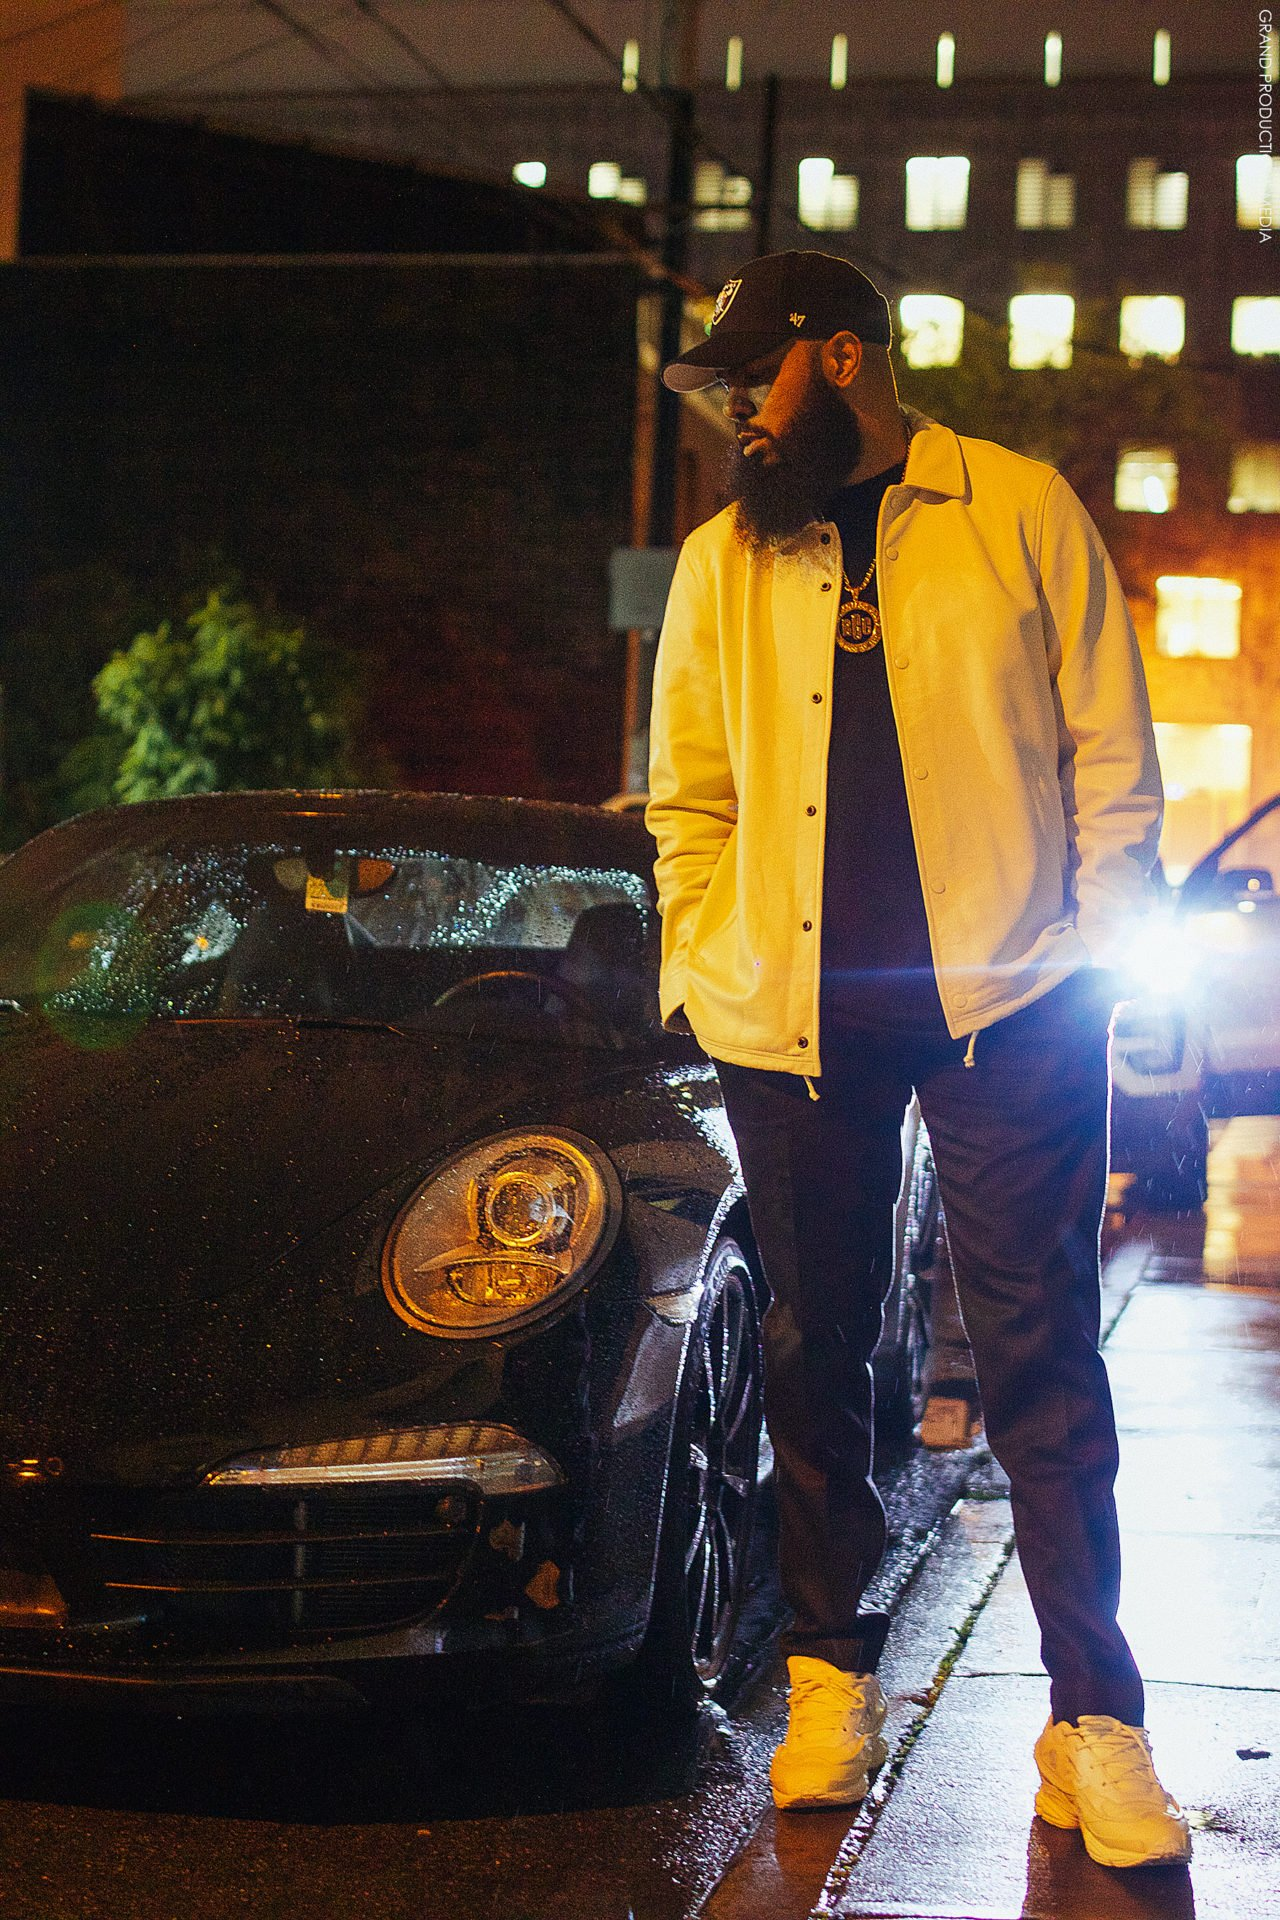 Stalley in the Adidas Raf Simons Ozweego Bunny Sneakers